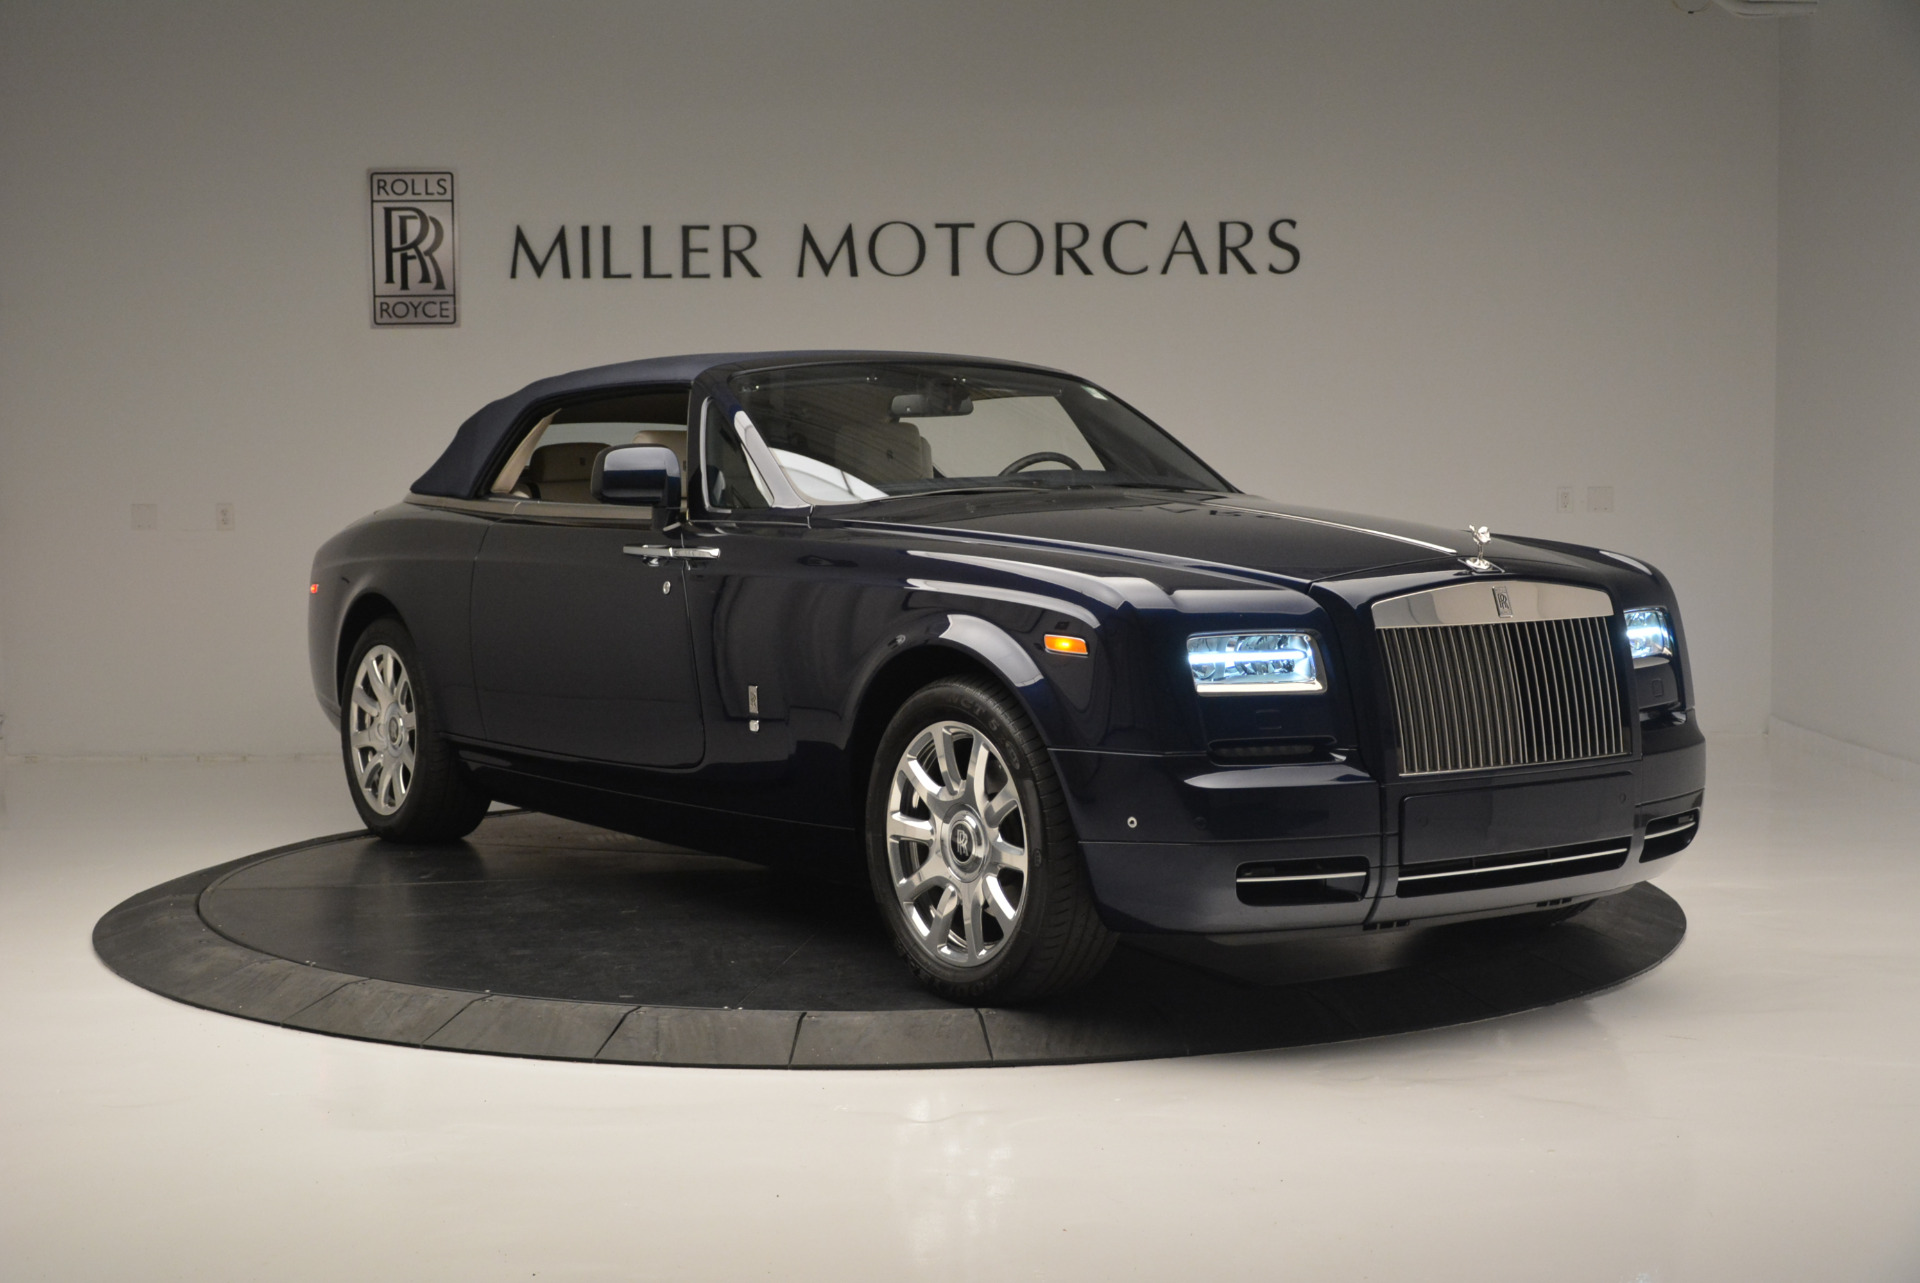 Used 2014 Rolls-Royce Phantom Drophead Coupe  For Sale In Westport, CT 2356_p15